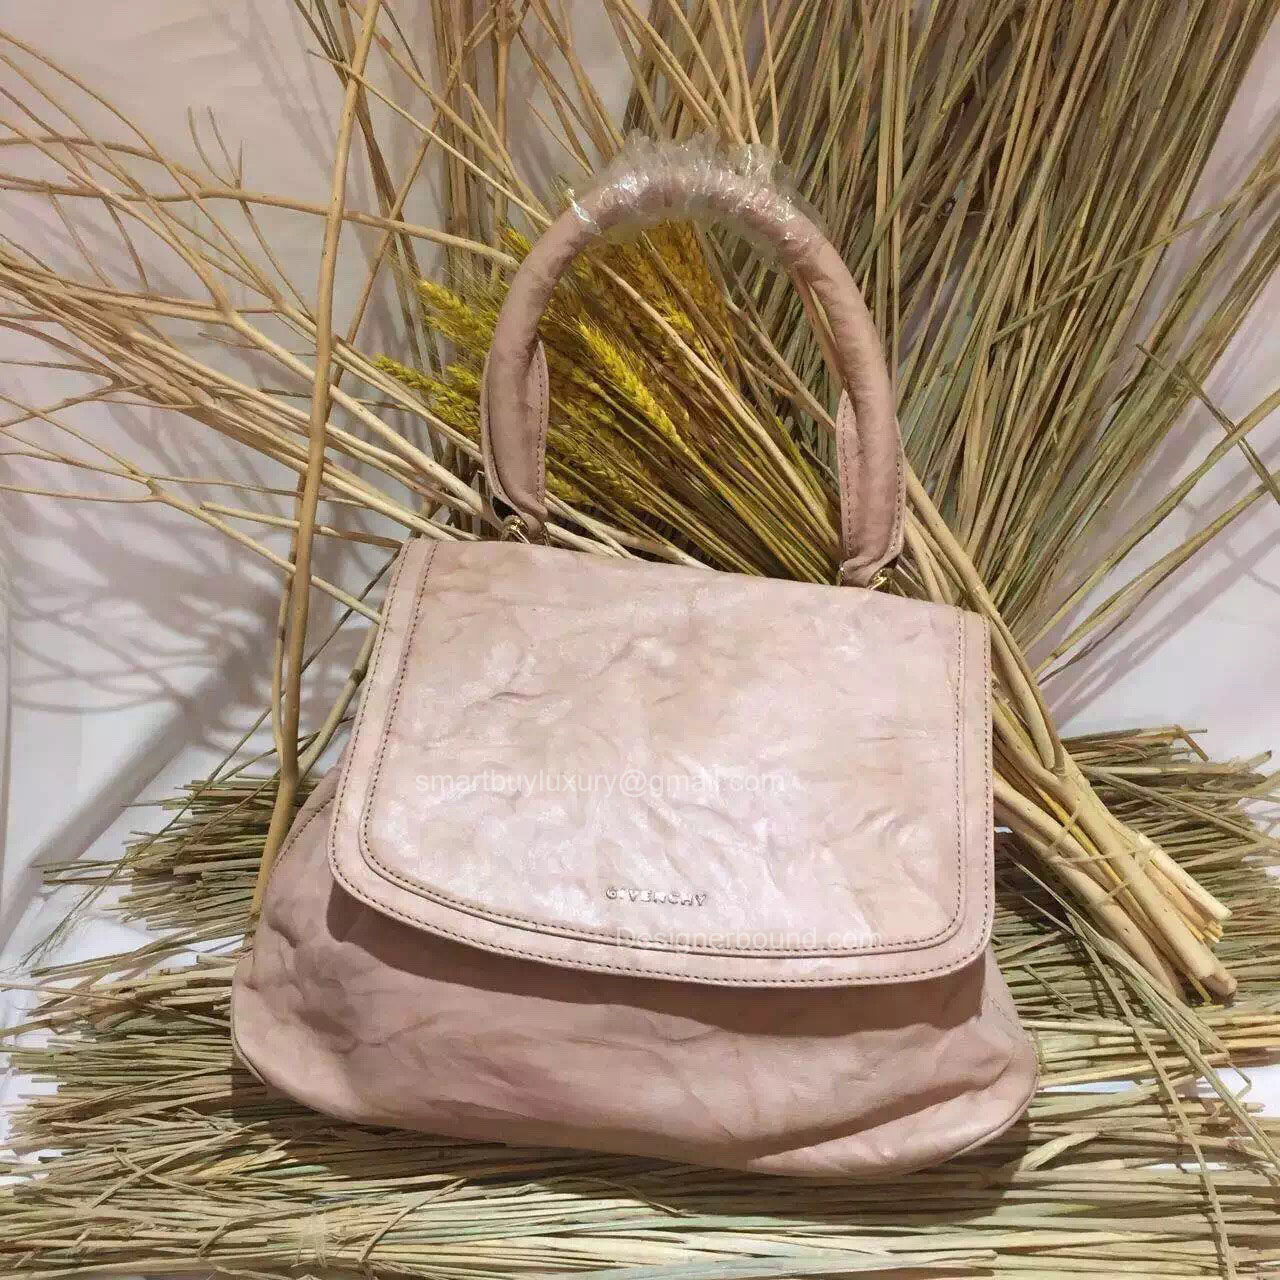 Givenchy Large Mirte Saddle Bag Beige 285176